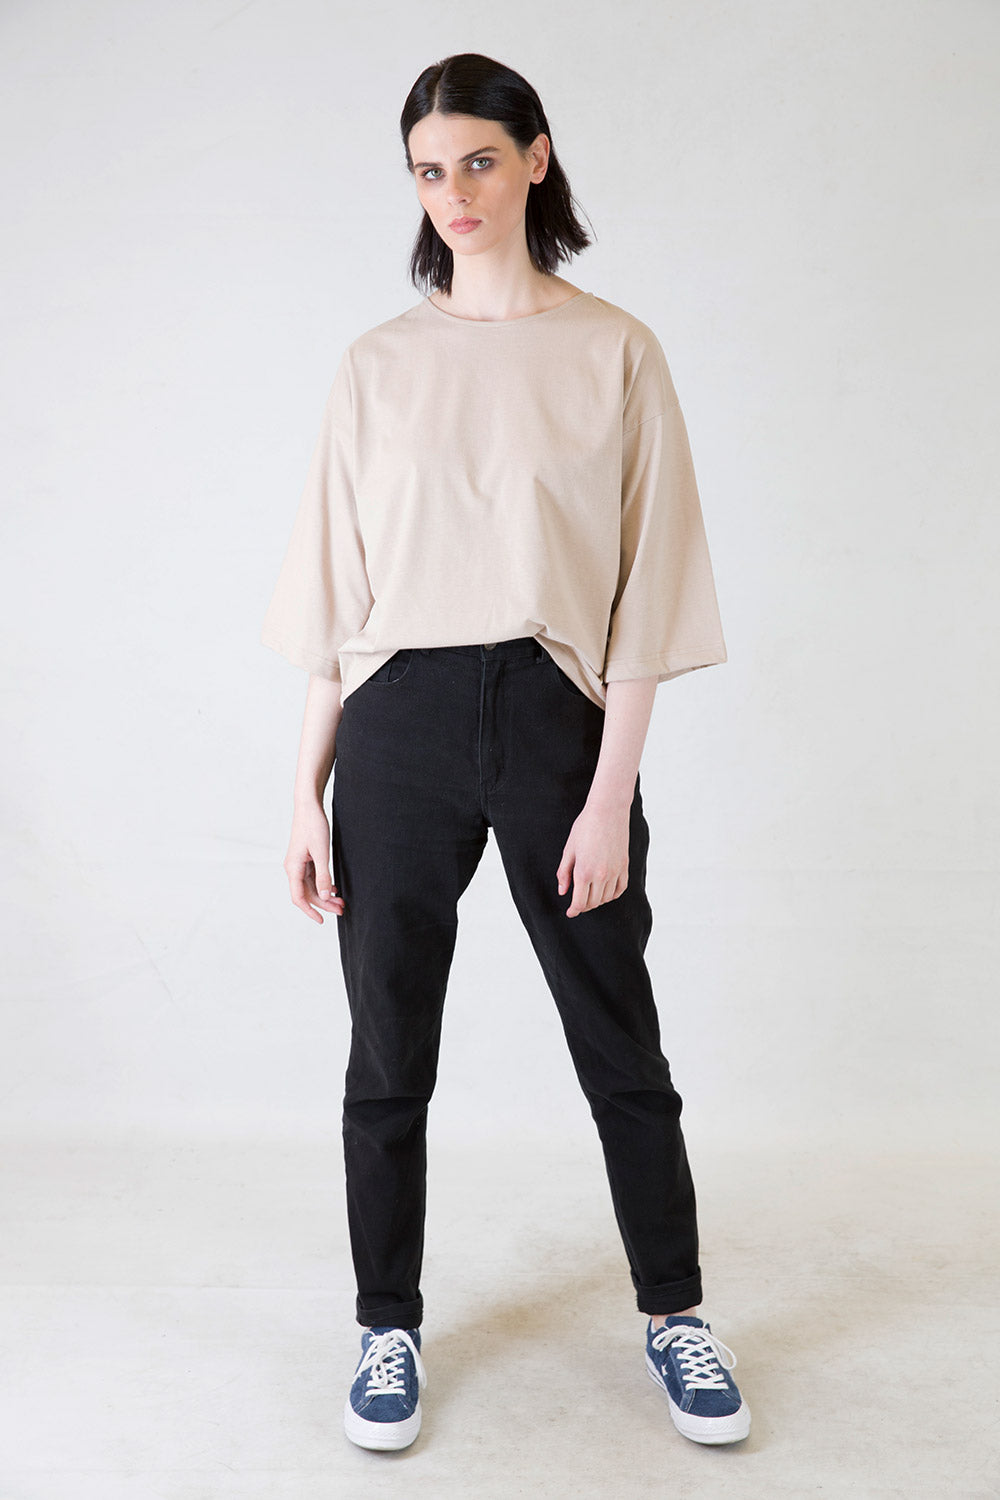 Heath Tee | Young + Resolute | Annah Stretton